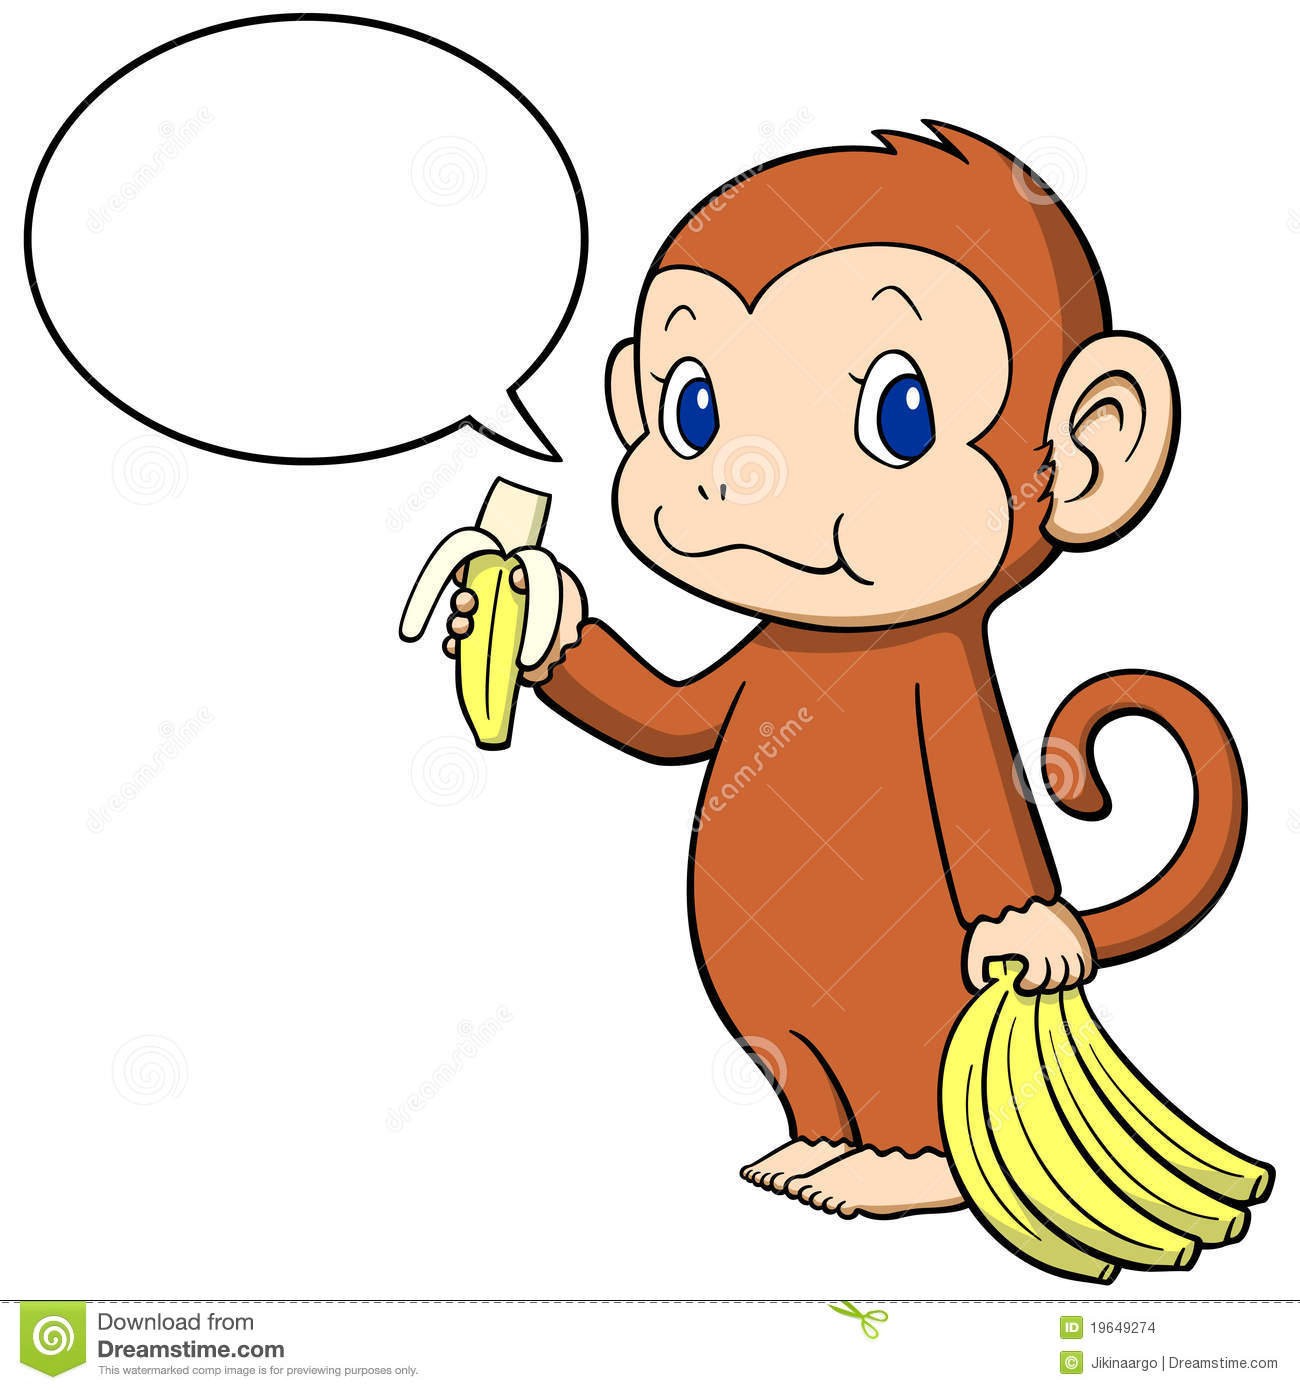 Banana clipart baby monkey Banana monkey Collection cartoon Pictures